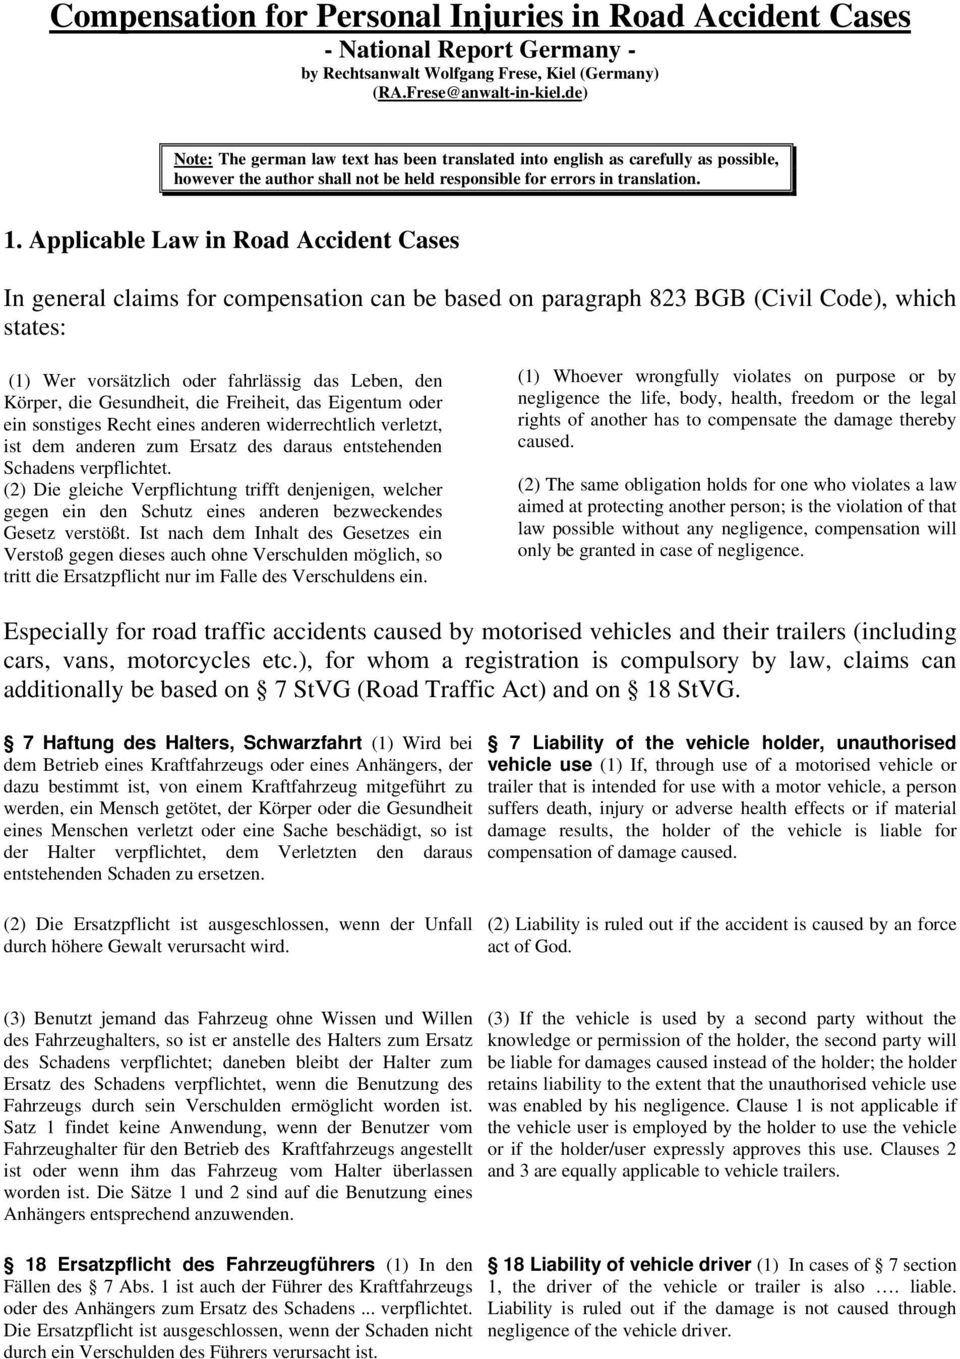 Applicable Law in Road Accident Cases In general claims for compensation can be based on paragraph 823 BGB (Civil Code), which states: (1) Wer vorsätzlich oder fahrlässig das Leben, den Körper, die